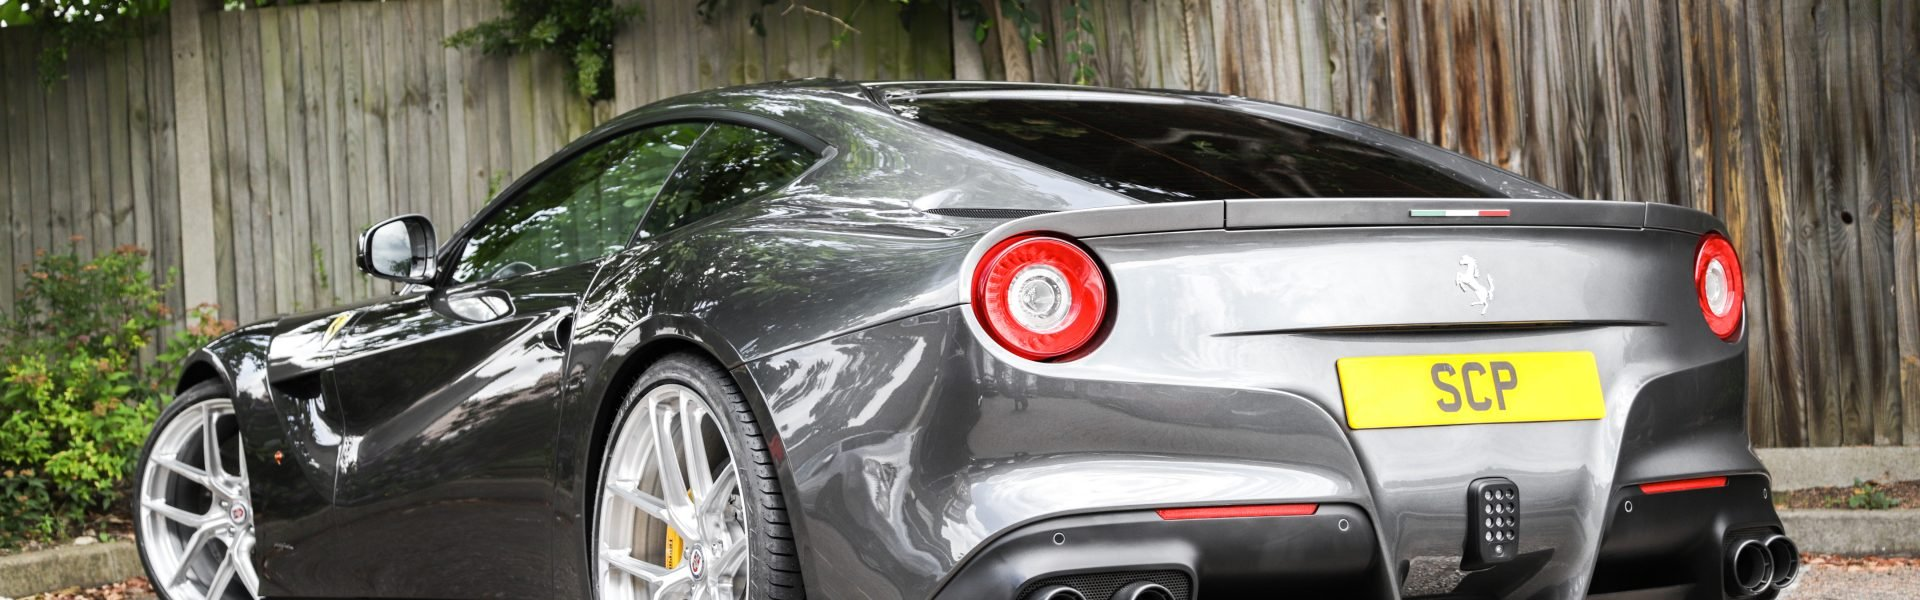 We turn the F12 up to 11 – Novitec Exhaust & Springs, HRE wheels